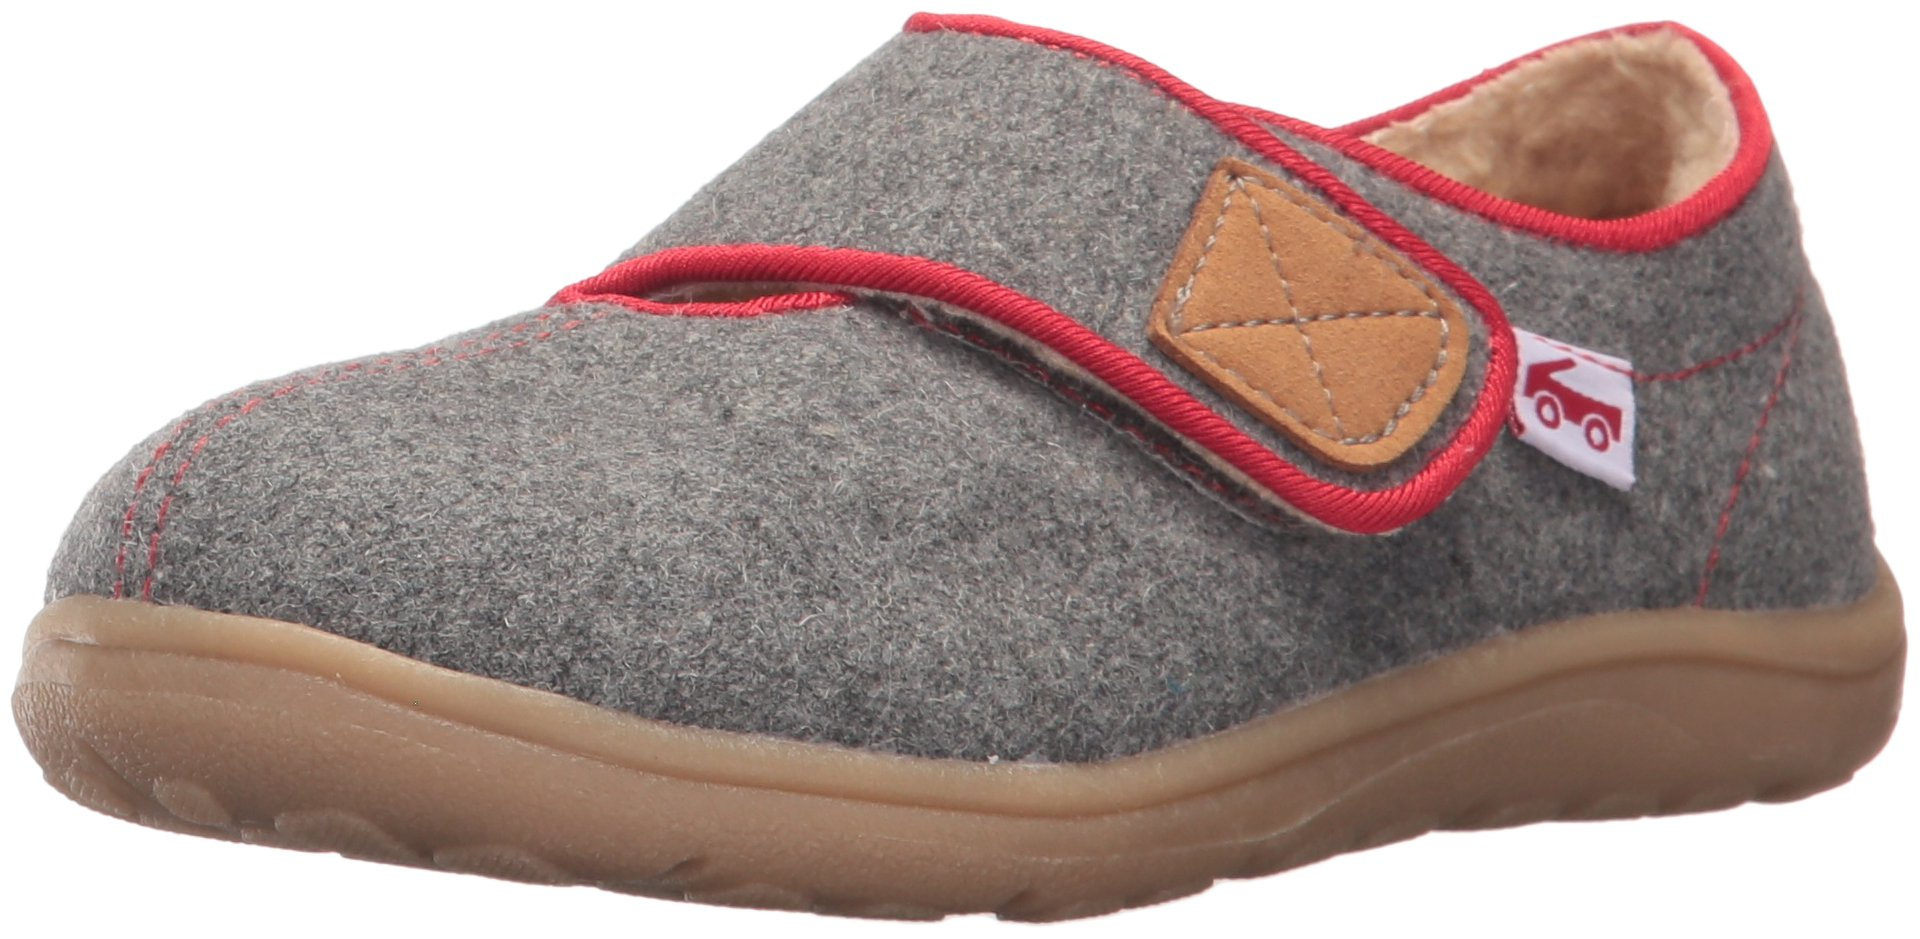 See Kai Run Boys' Cruz Shearling Slipper, Gray, 6 M US Toddler